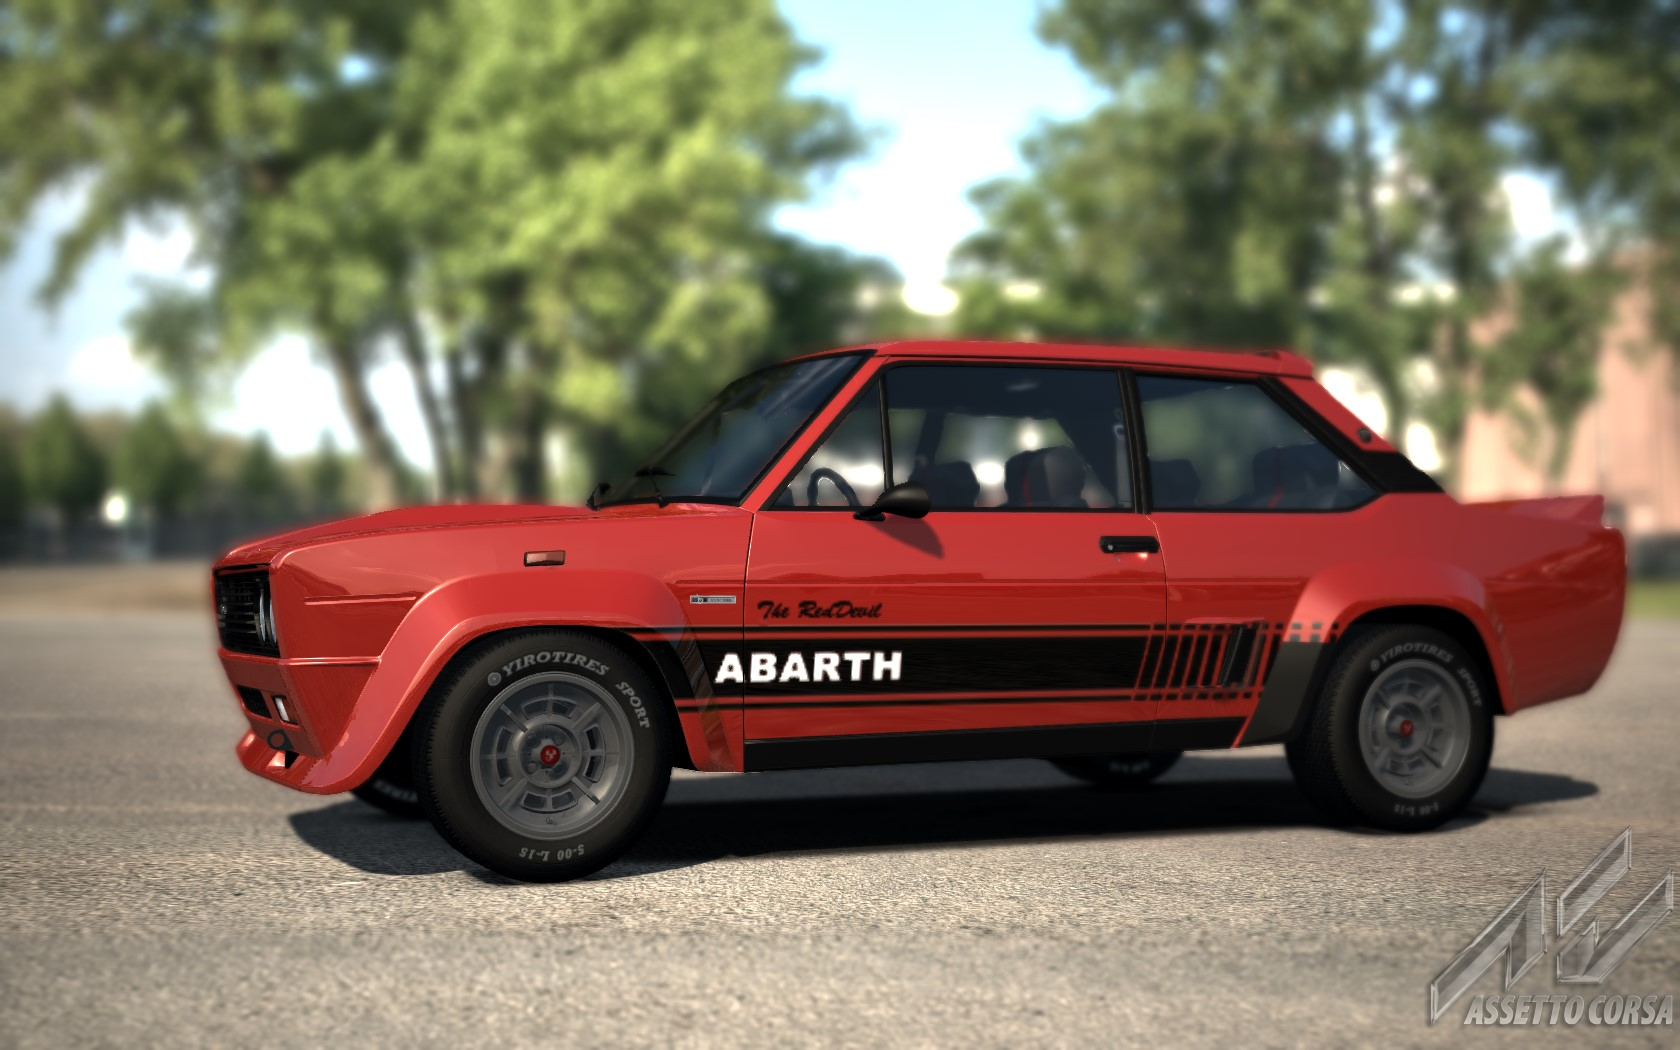 Showroom_fiat_131_abarth_s1_15-7-2015-21-6-28.jpg